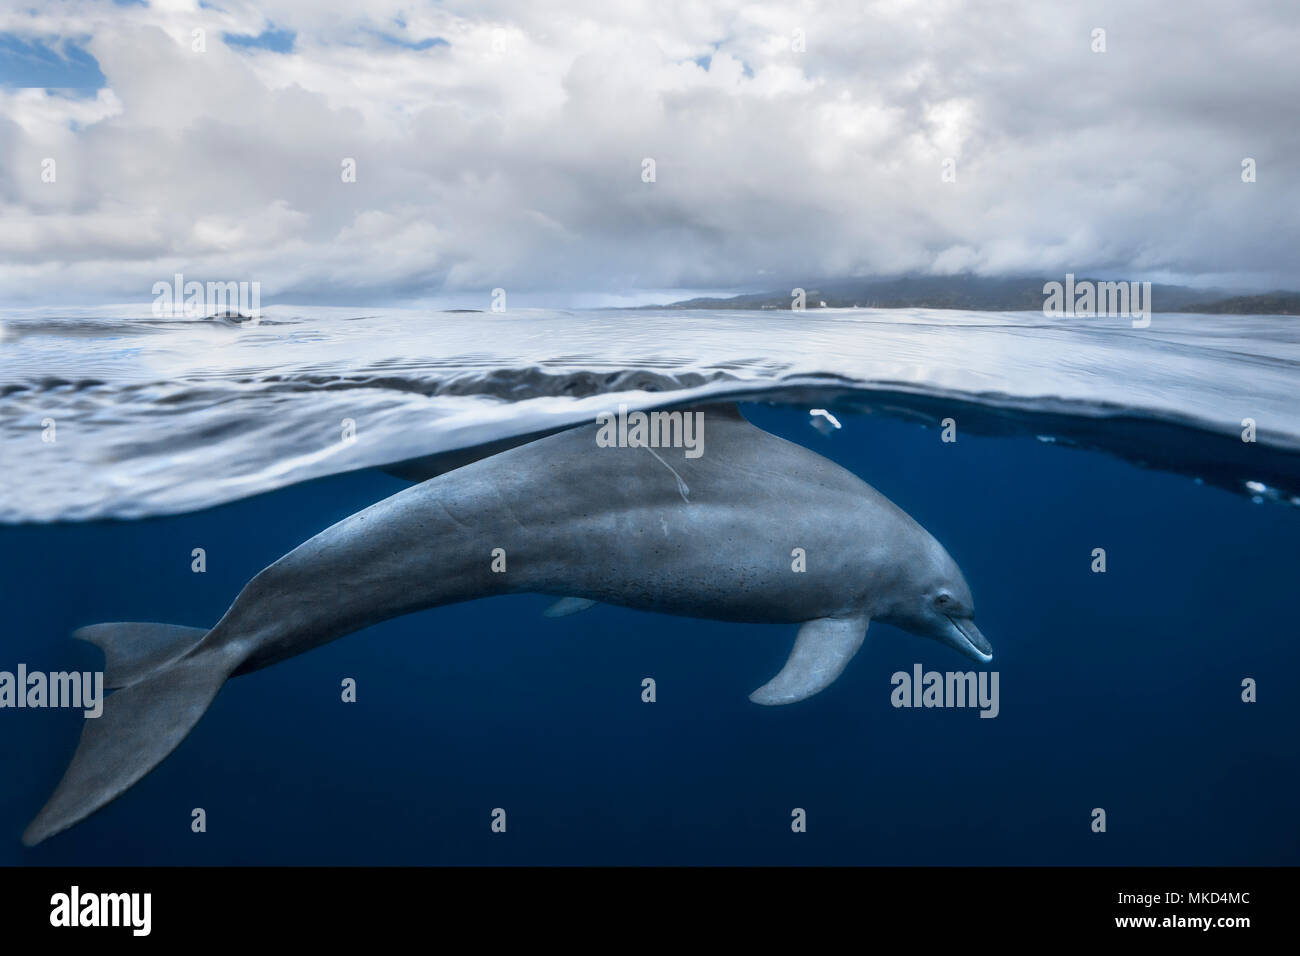 Indian Ocean bottlenose dolphin (Tursiops aduncus) in the lagoon, Mayotte, Indian Ocean - Stock Image